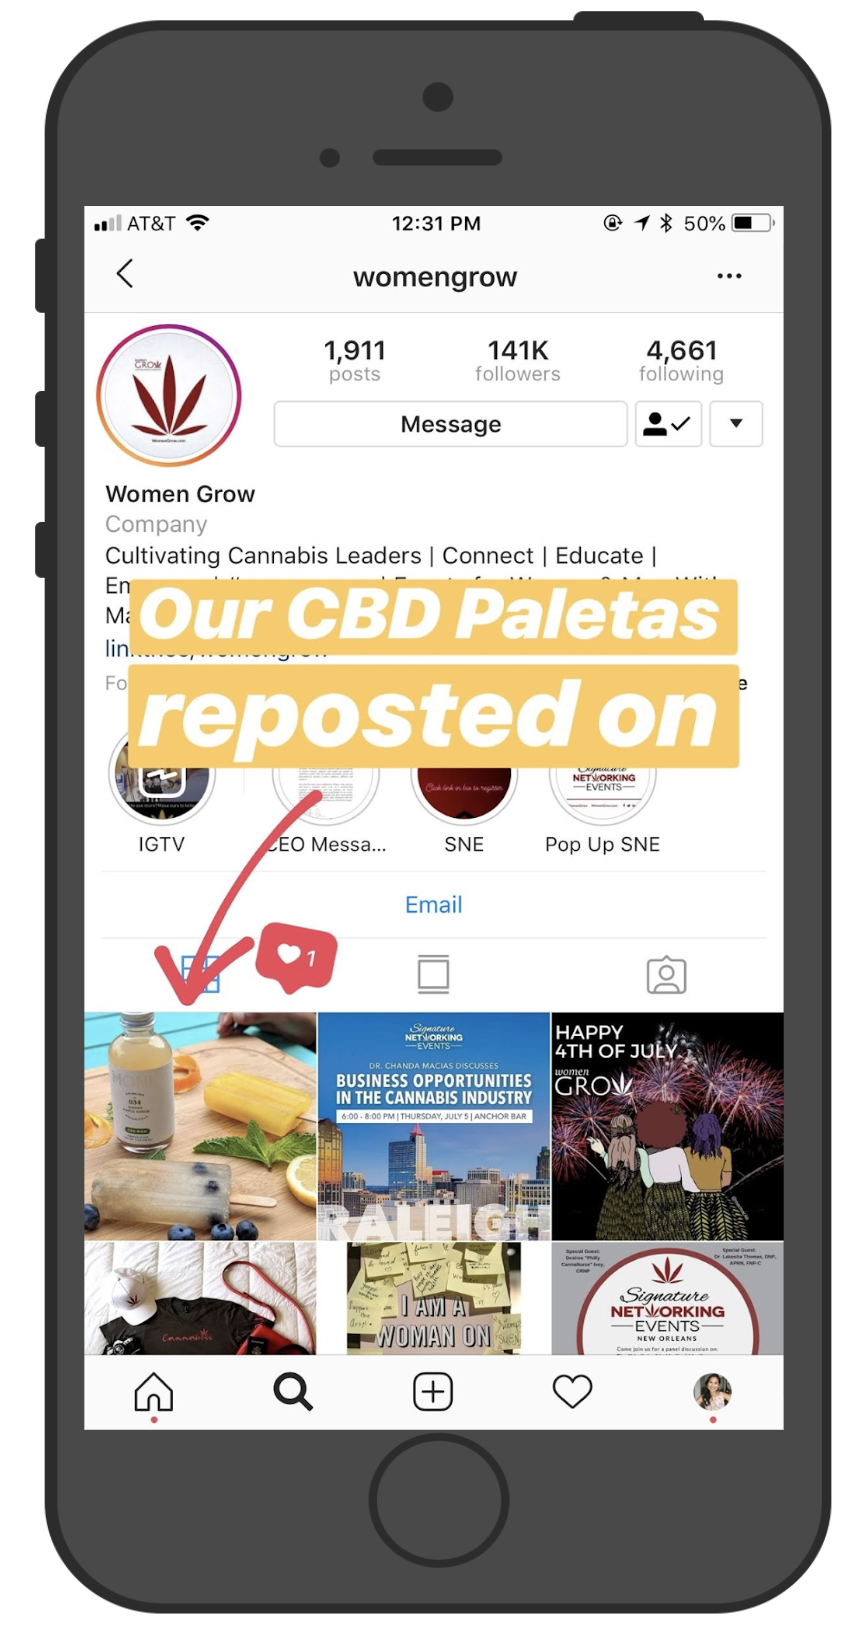 One of our first reposts! Our CBD Paleta's made it to Women Grow's 141K Instagram audience!